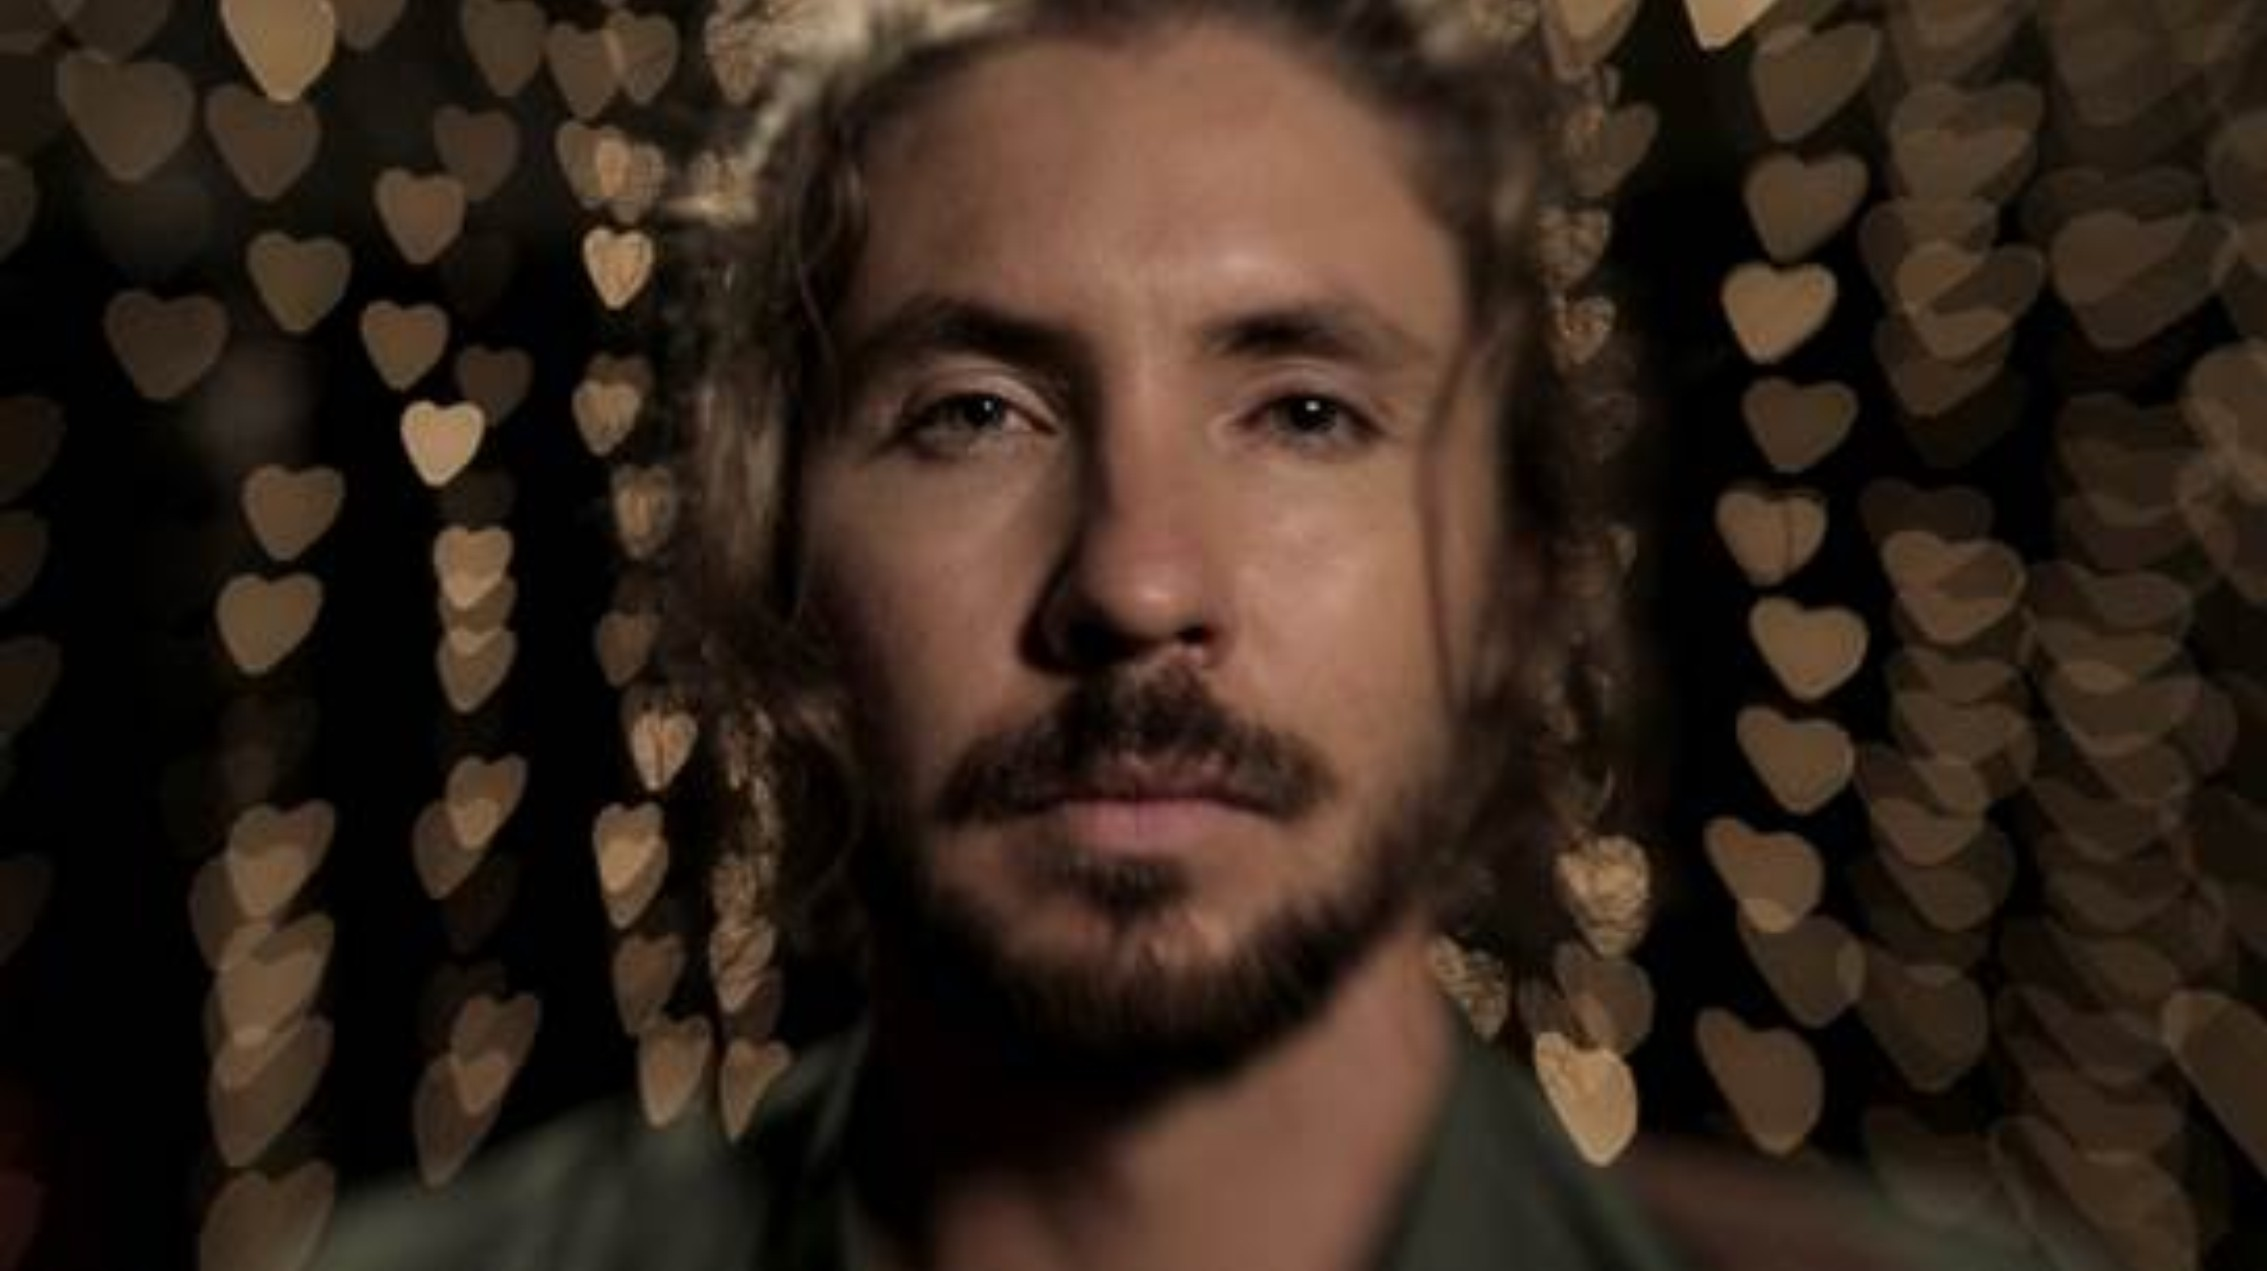 Jeremy Loops releases his Skinny Blues music video to the South African music scene